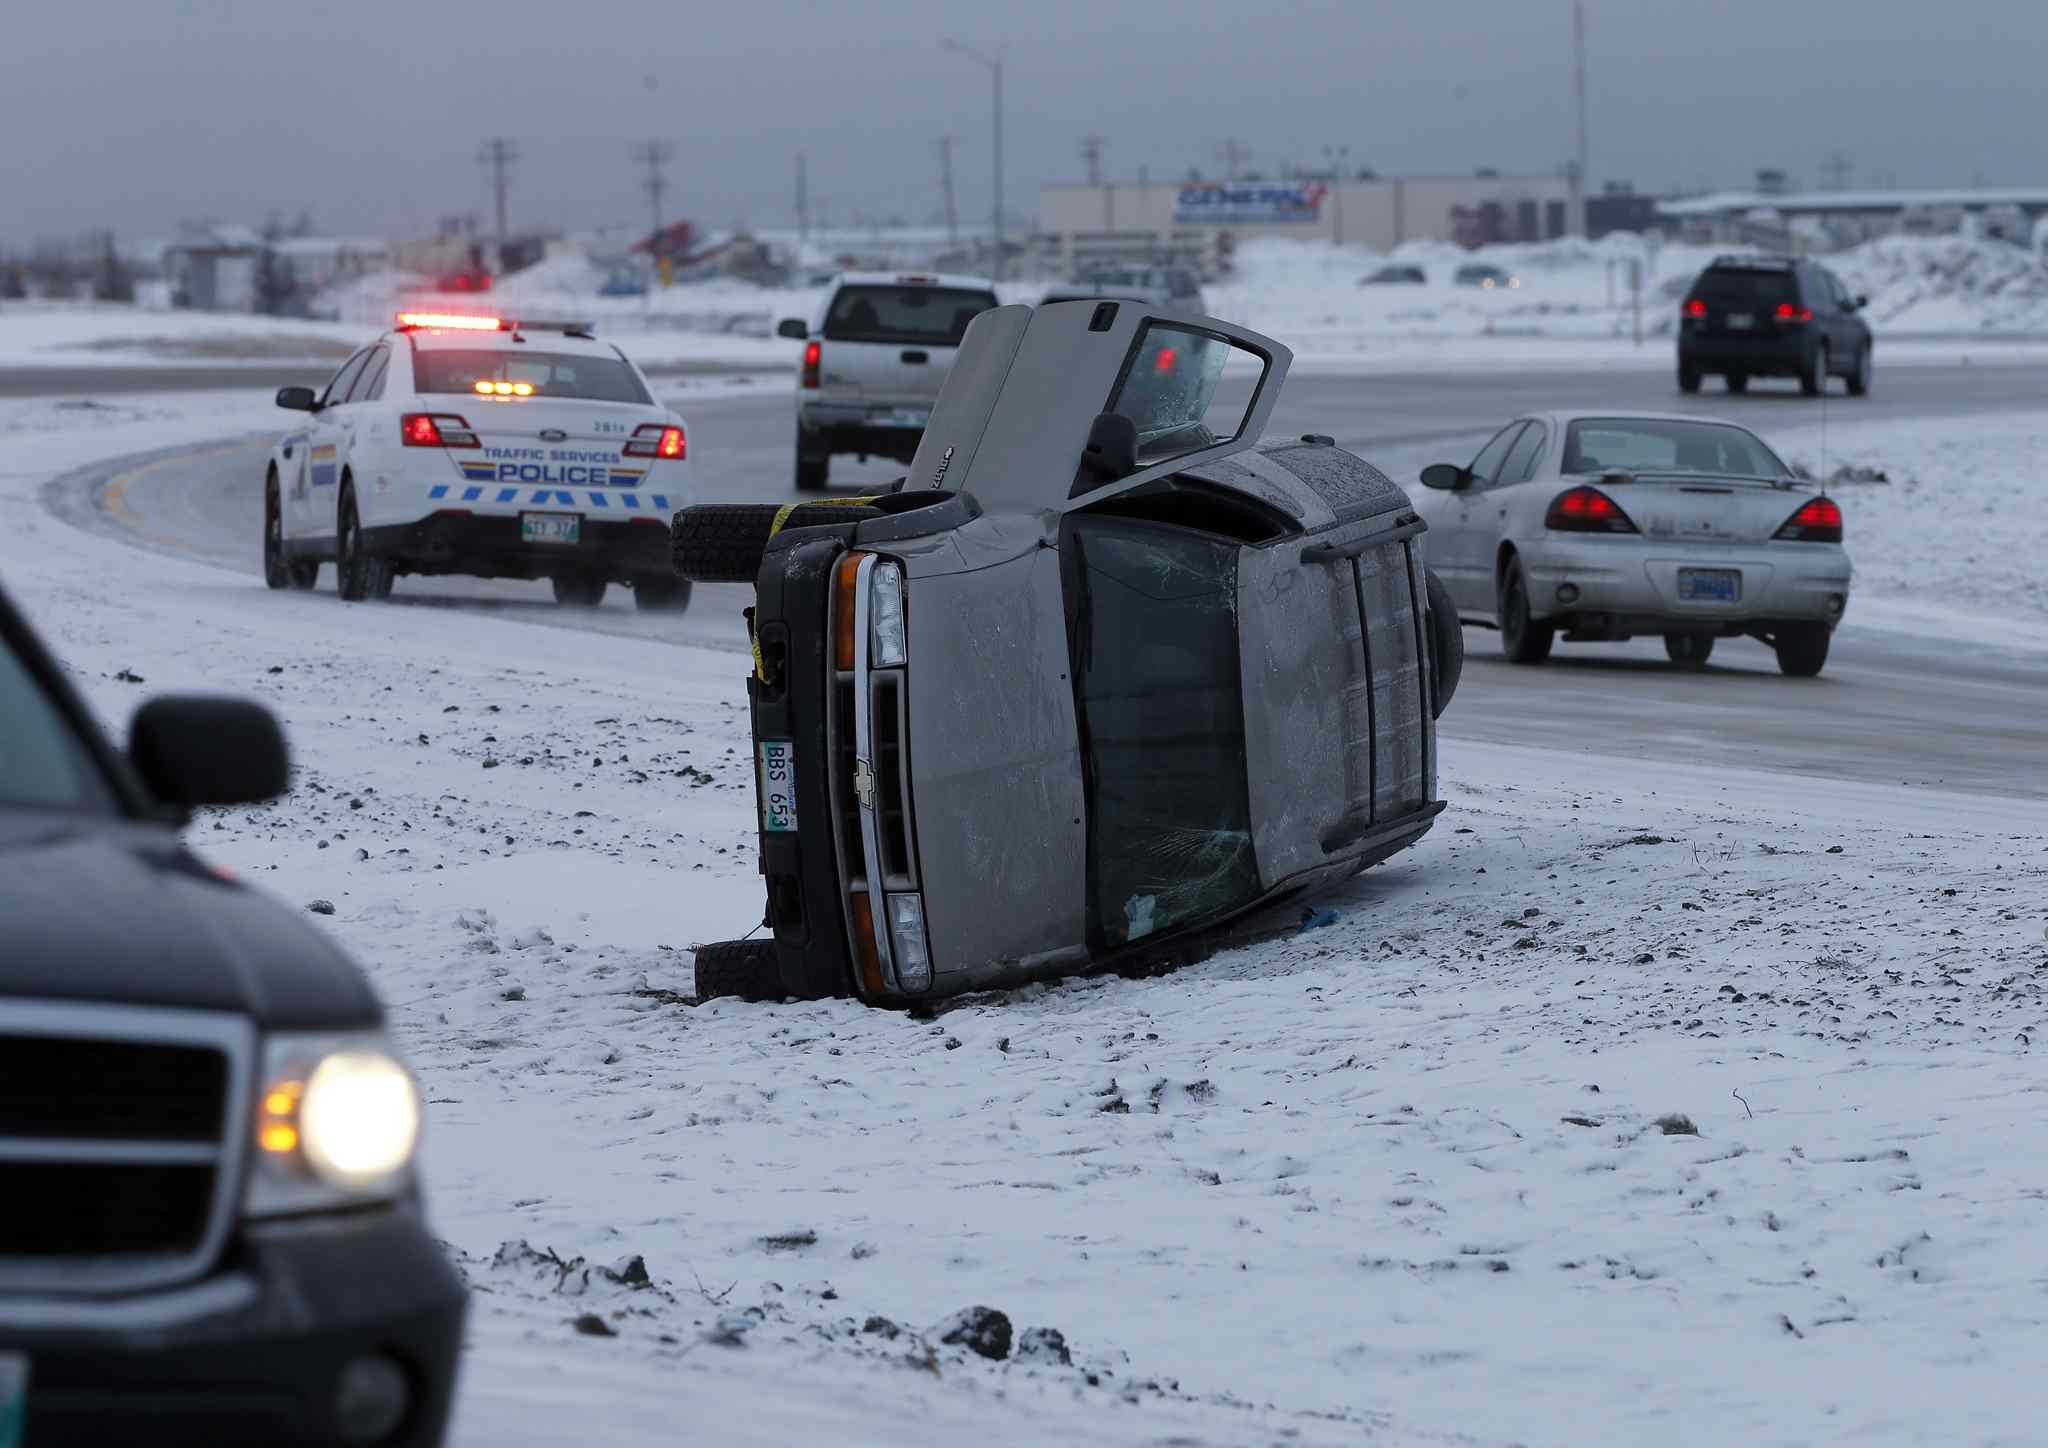 Four cars were off the road due to glare ice conditions on the rail overpass east of Centreport Canada Way.